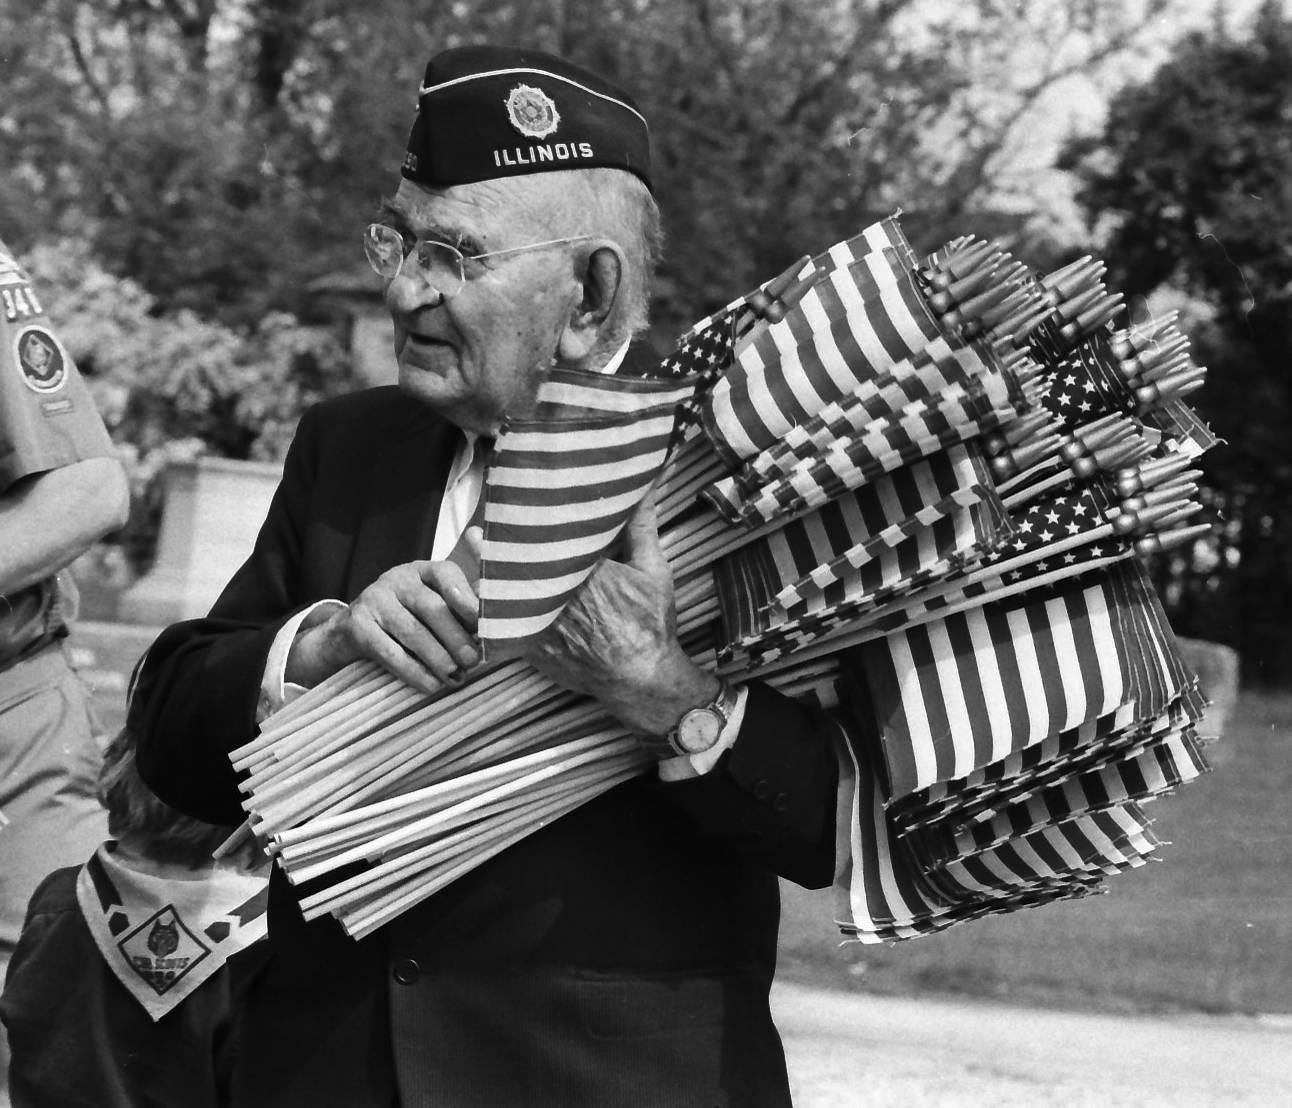 A veteran from Palatine gets ready for the Memorial Day parade.